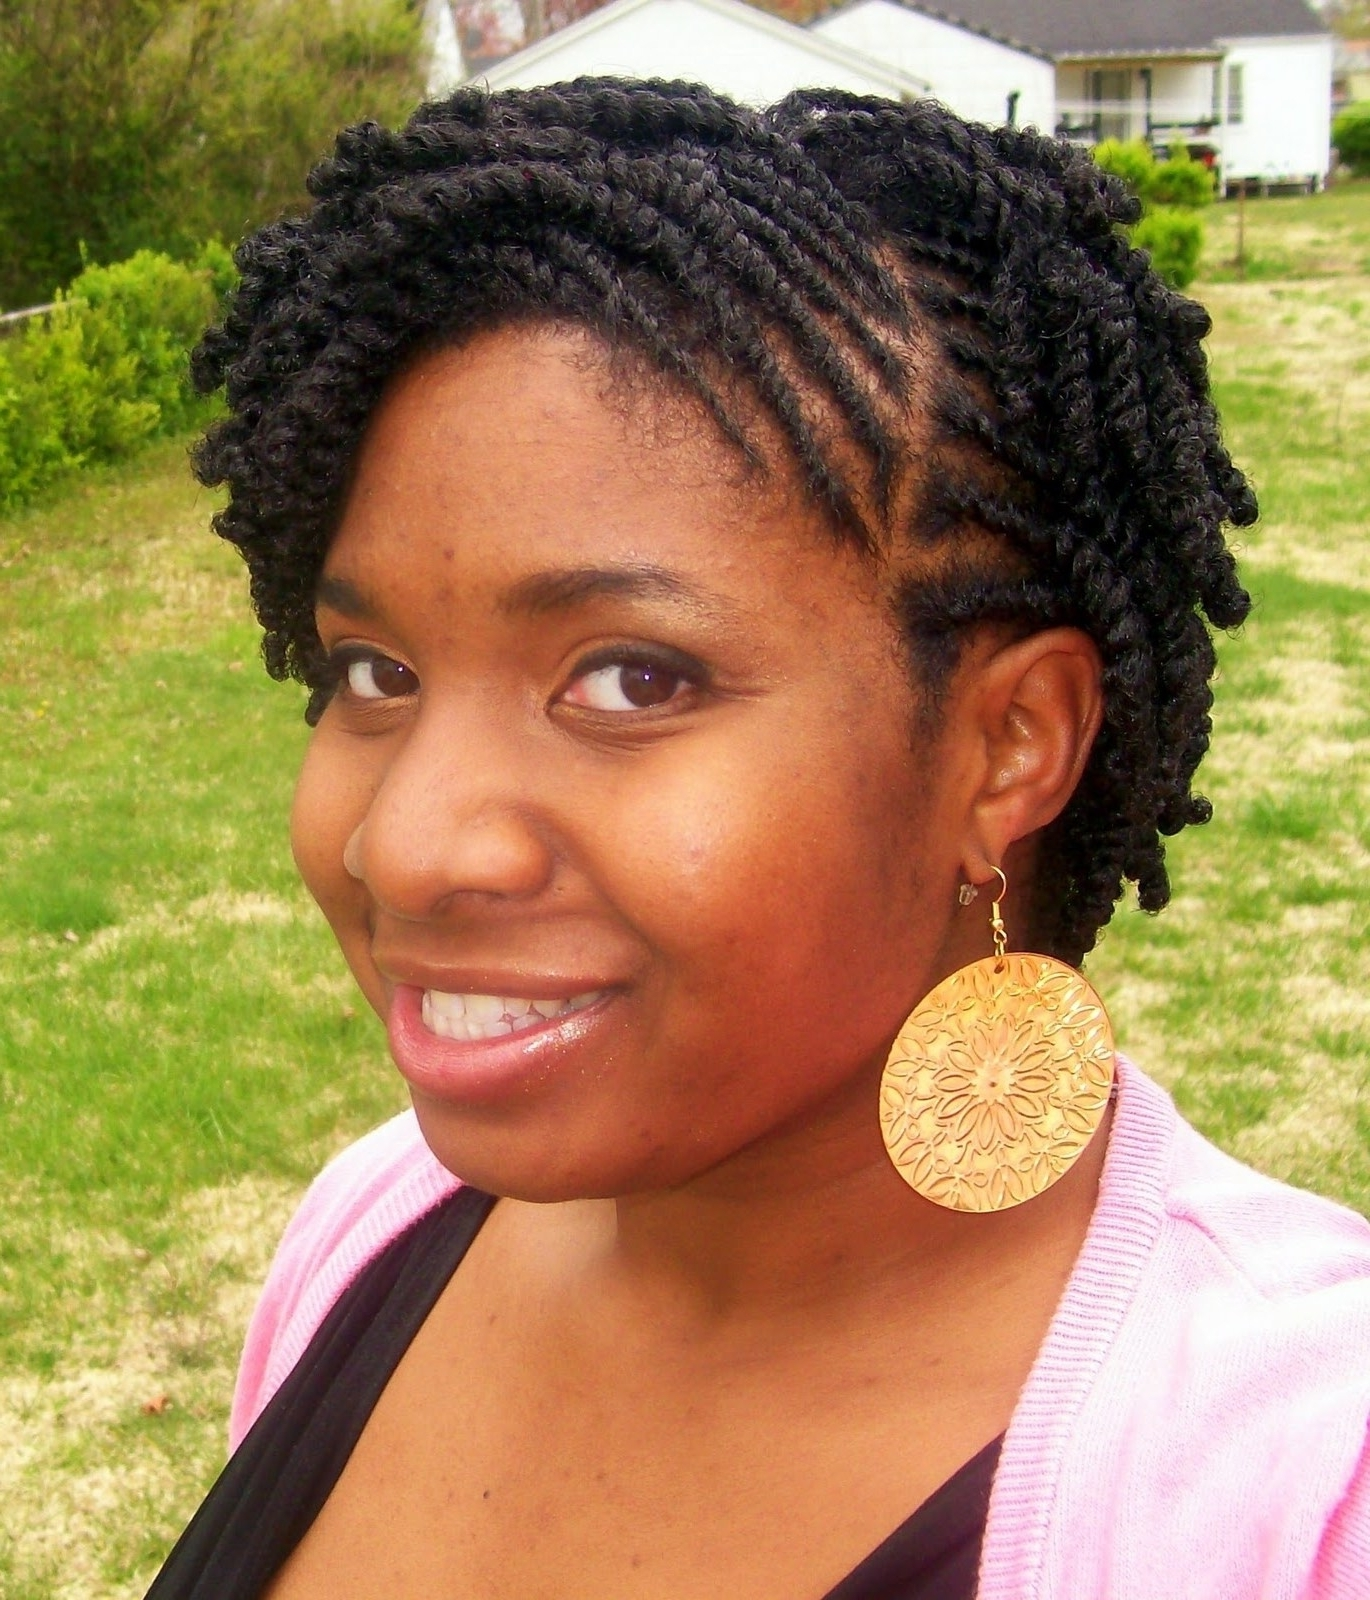 Newest Braided Hairstyles For Short Natural Hair Intended For 30 Exclusive Twist Hairstyles For Short Natural Hair ~ Louis Palace (View 13 of 15)